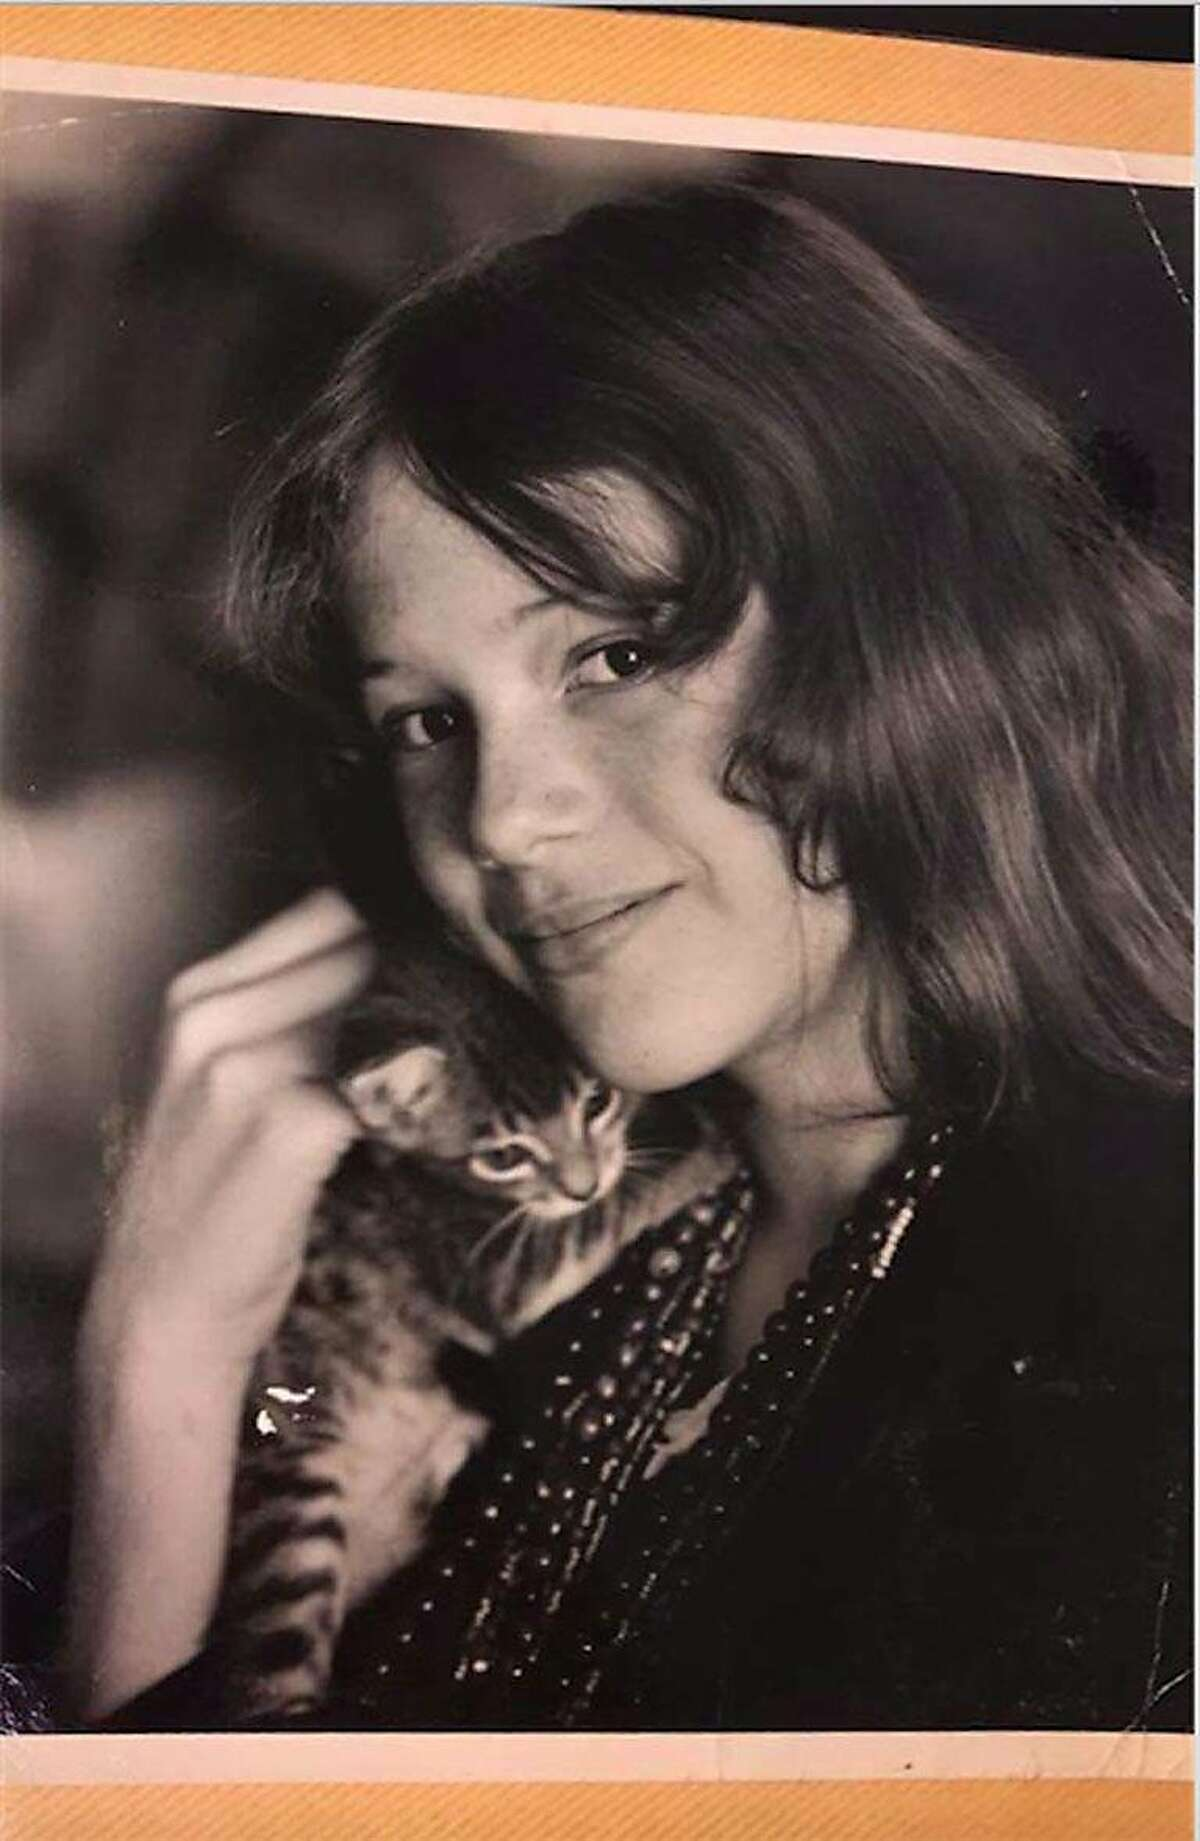 Katherine Poppy when she lived in the Haight-Ashbury in the 1960s.